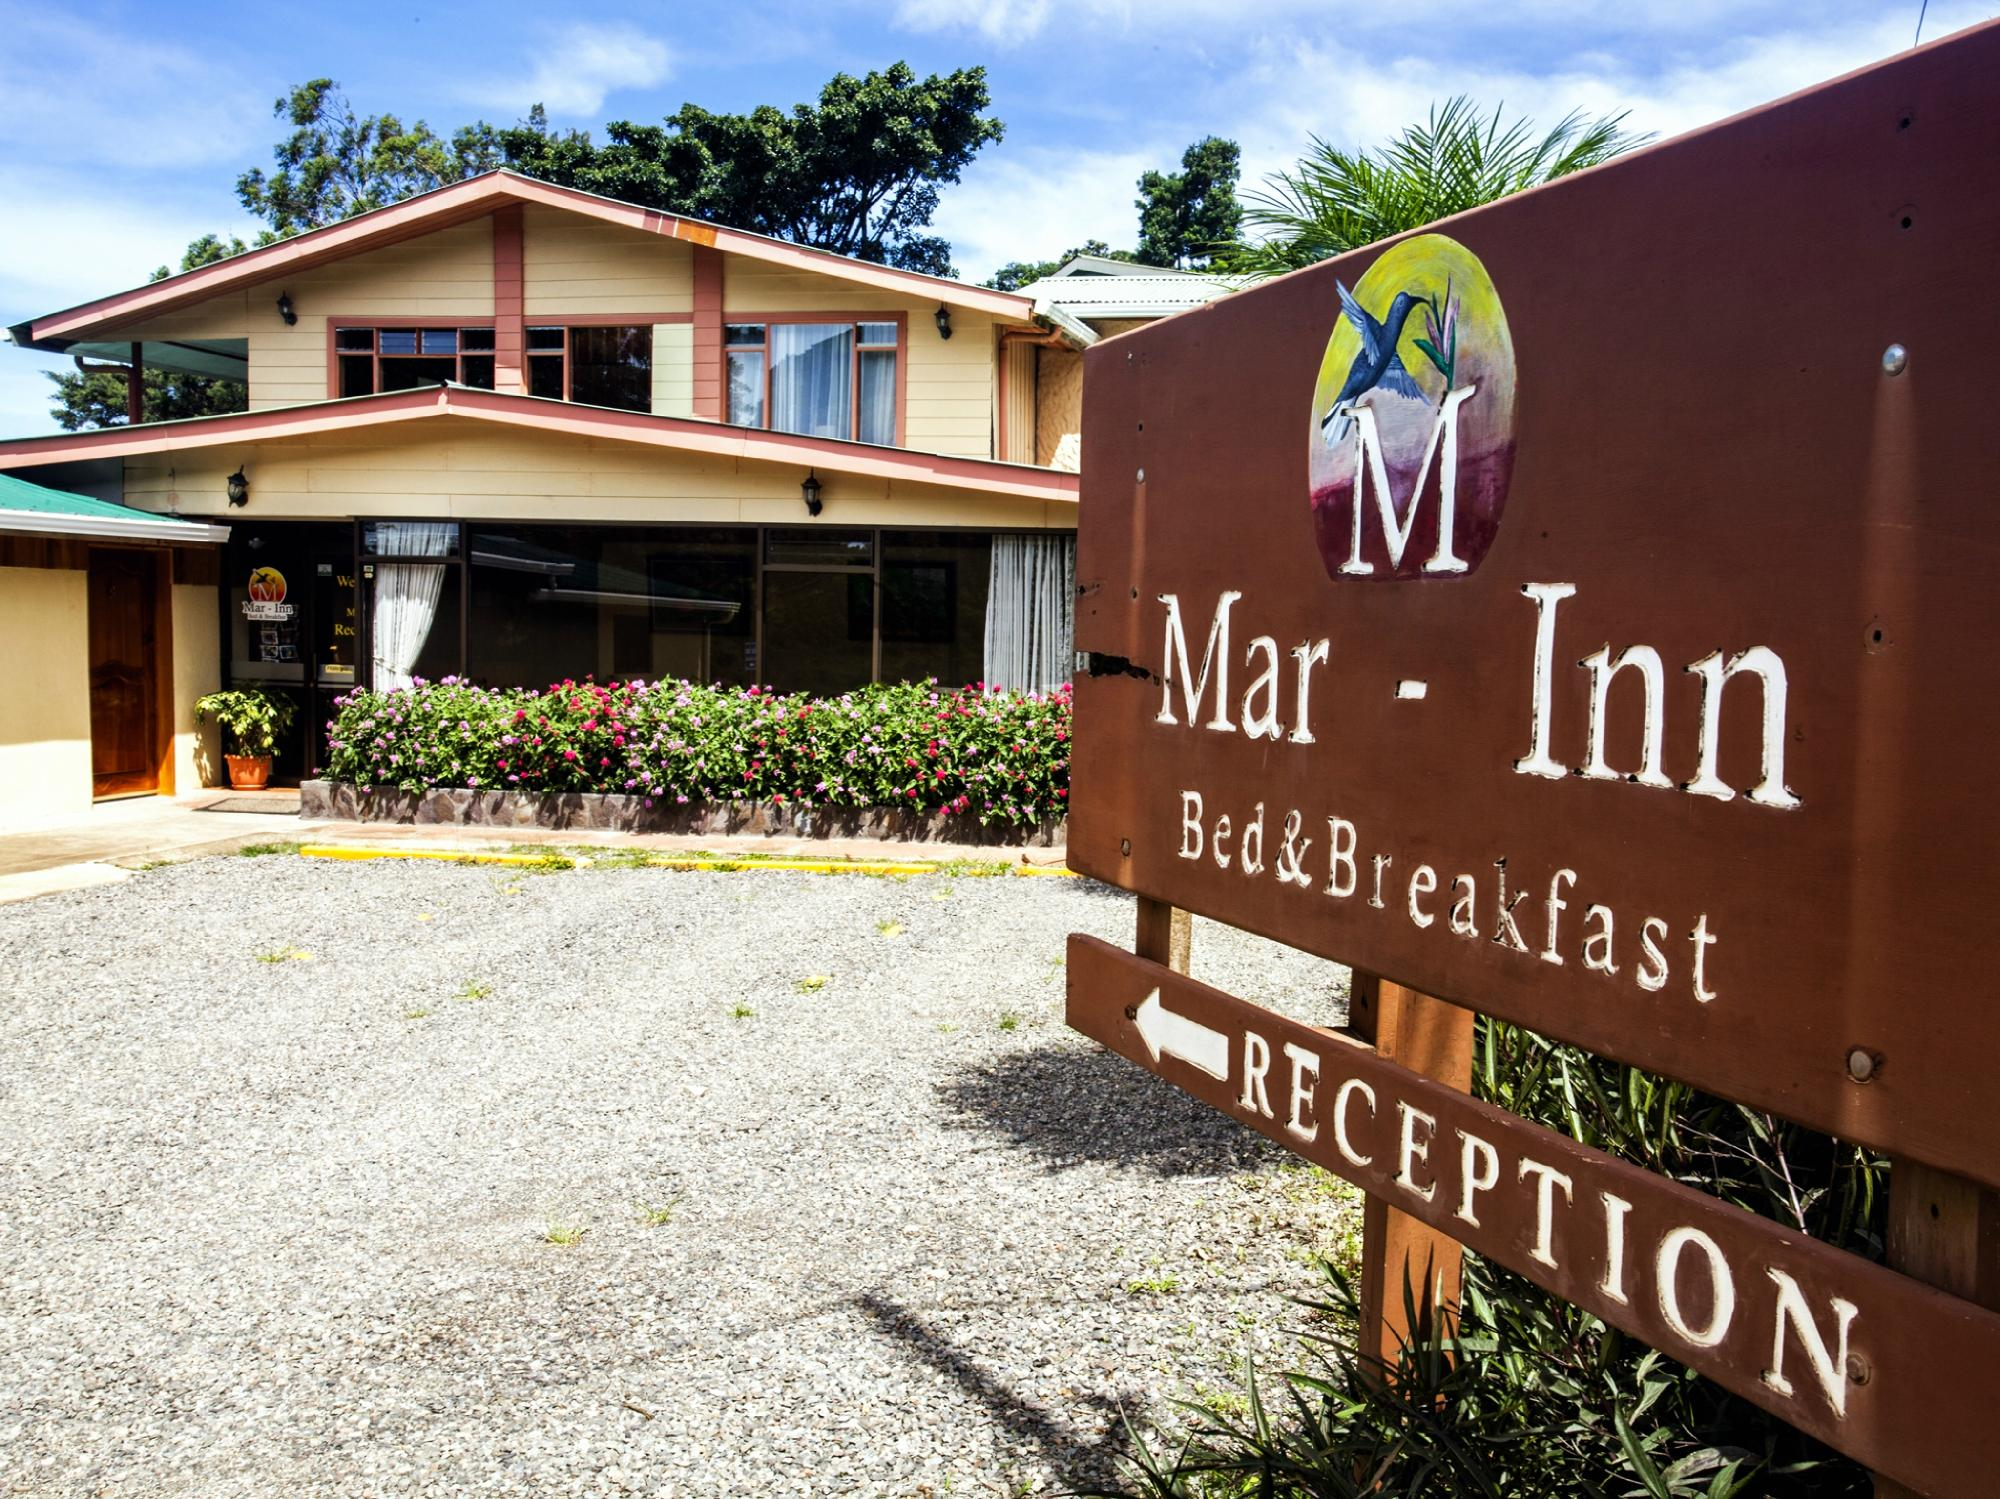 Mar Inn Bed & Breakfast